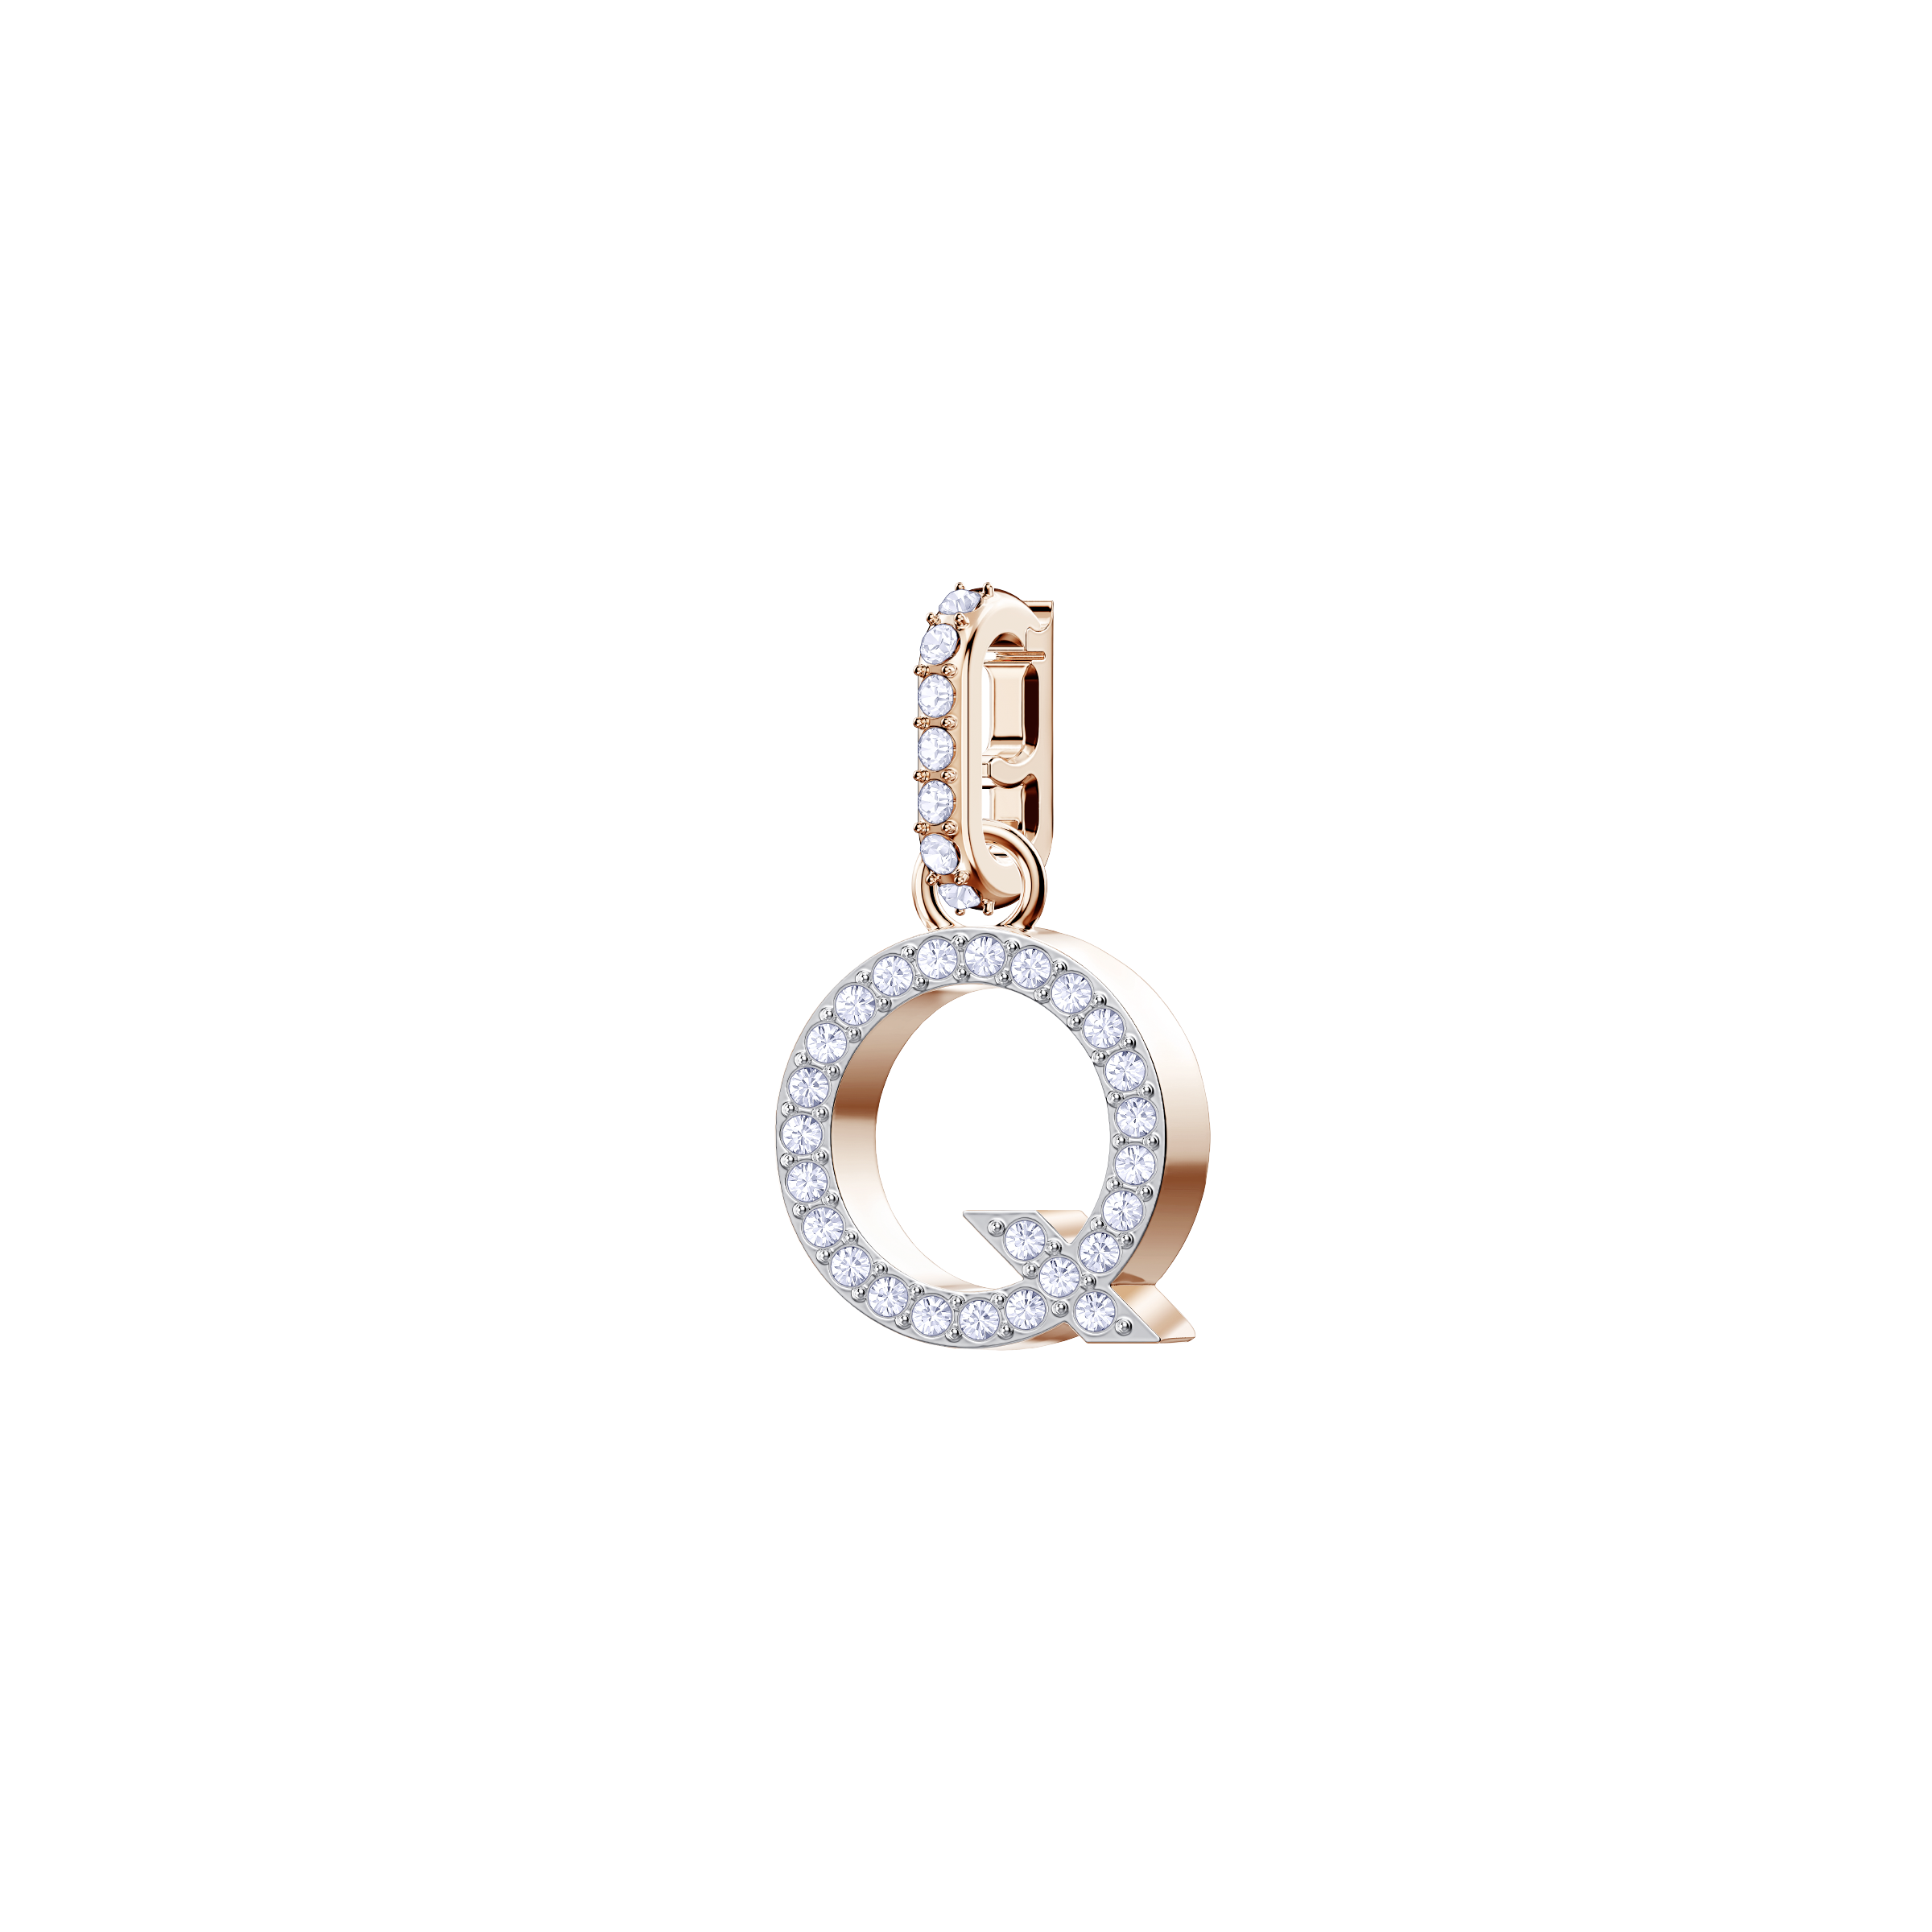 Swarovski Remix Collection Charm Q, White, Rose Gold Plating